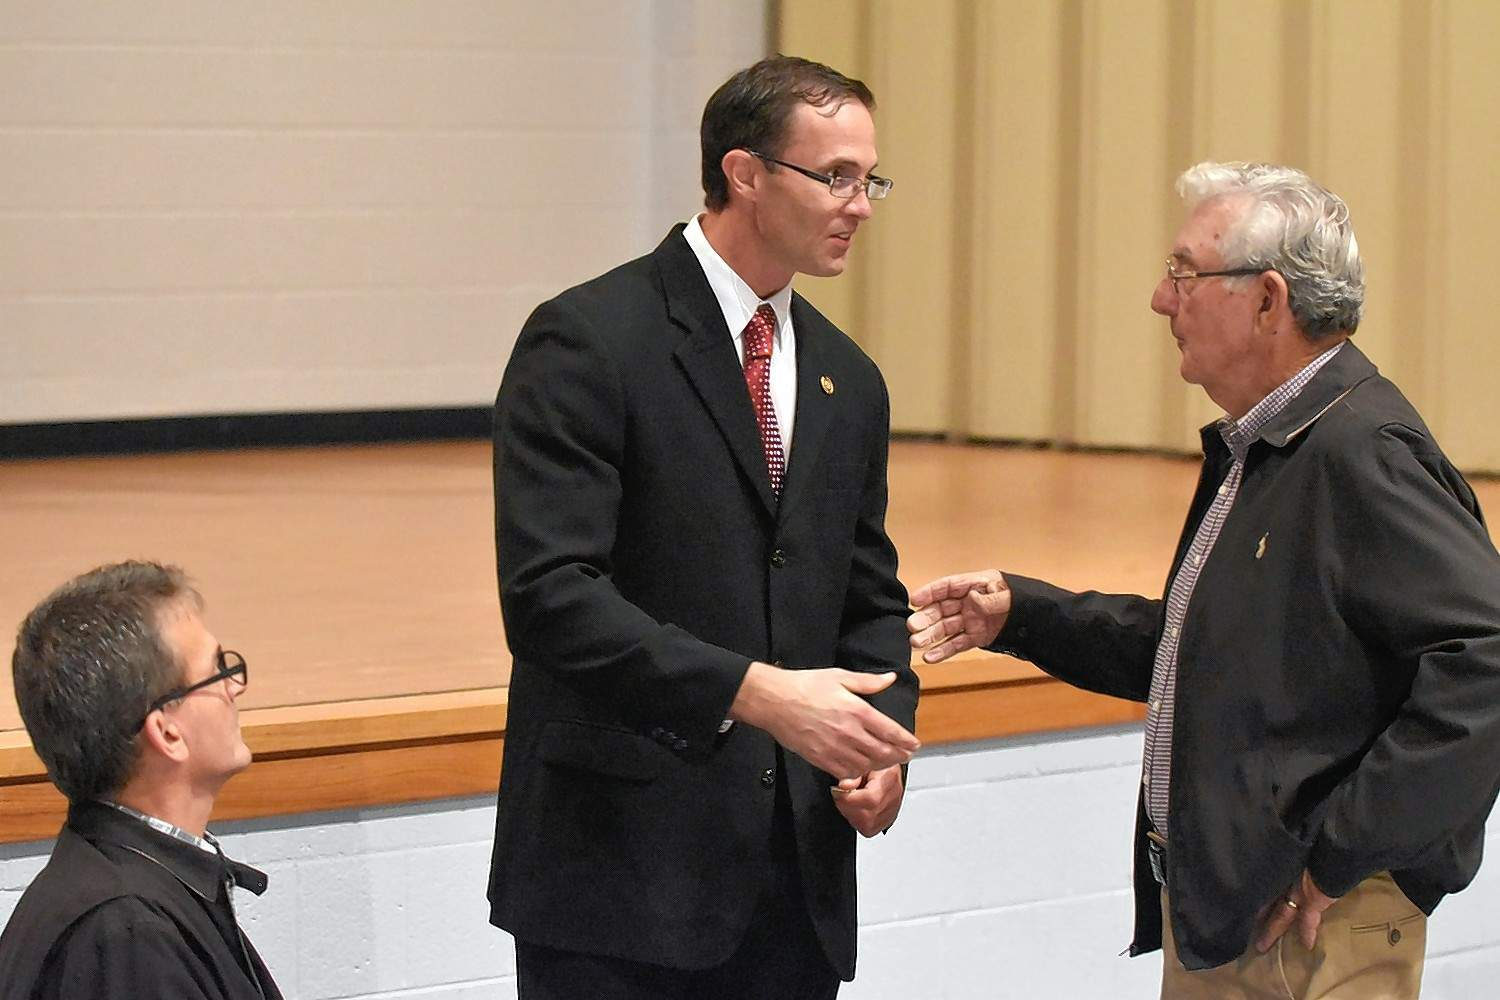 Southeastern Illinois College student government co-adviser Matt Lees, center, explains the rules of a coin flip to decide speaking order, with Saline County Democratic Party Chairman Bob Oglesby, at right, and current Saline County Board chairman Jay Williams.